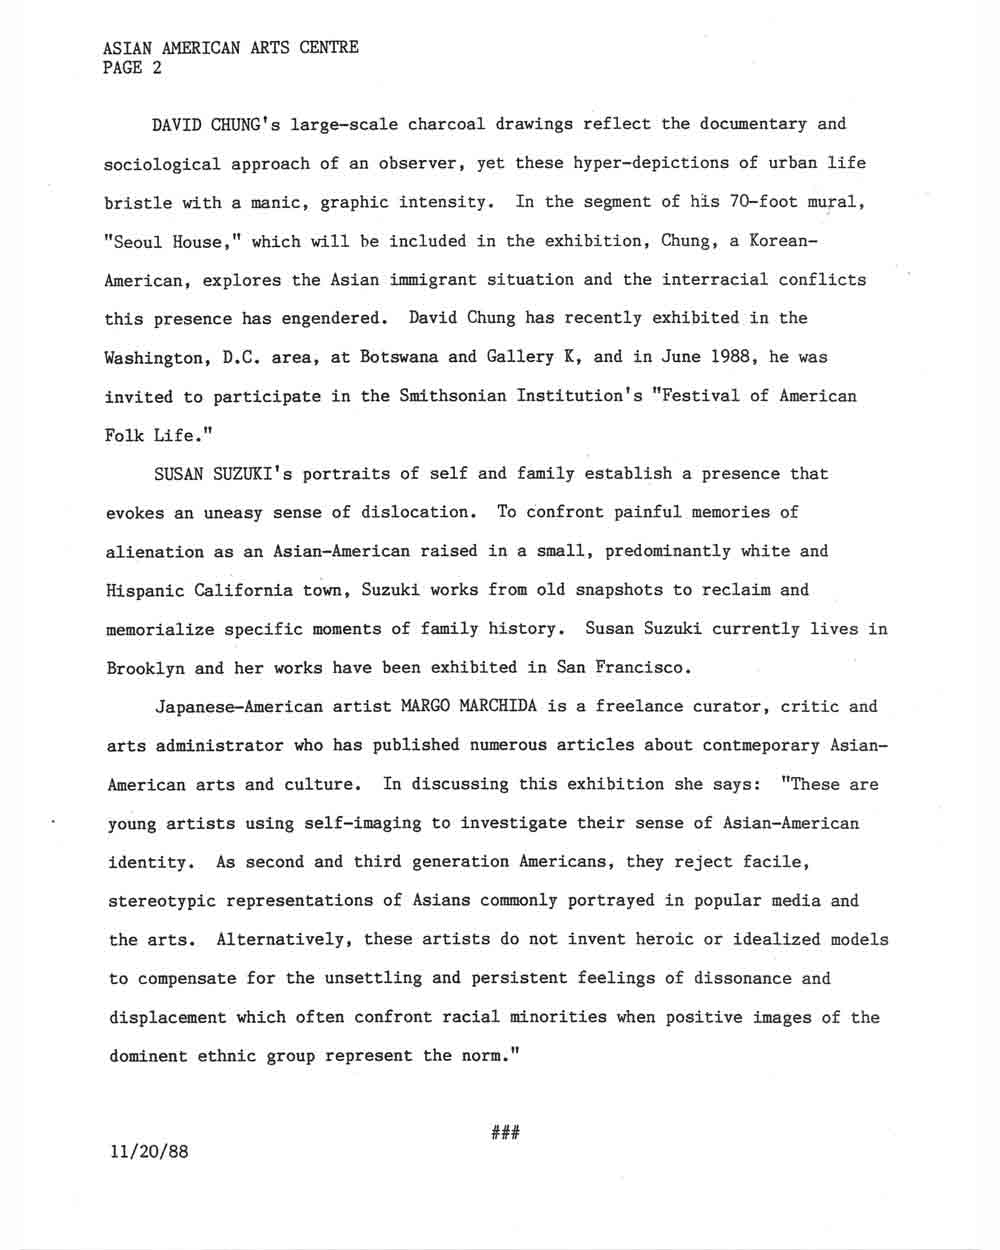 Invented Selves: Images of Asian-American Identity, press release, pg 2